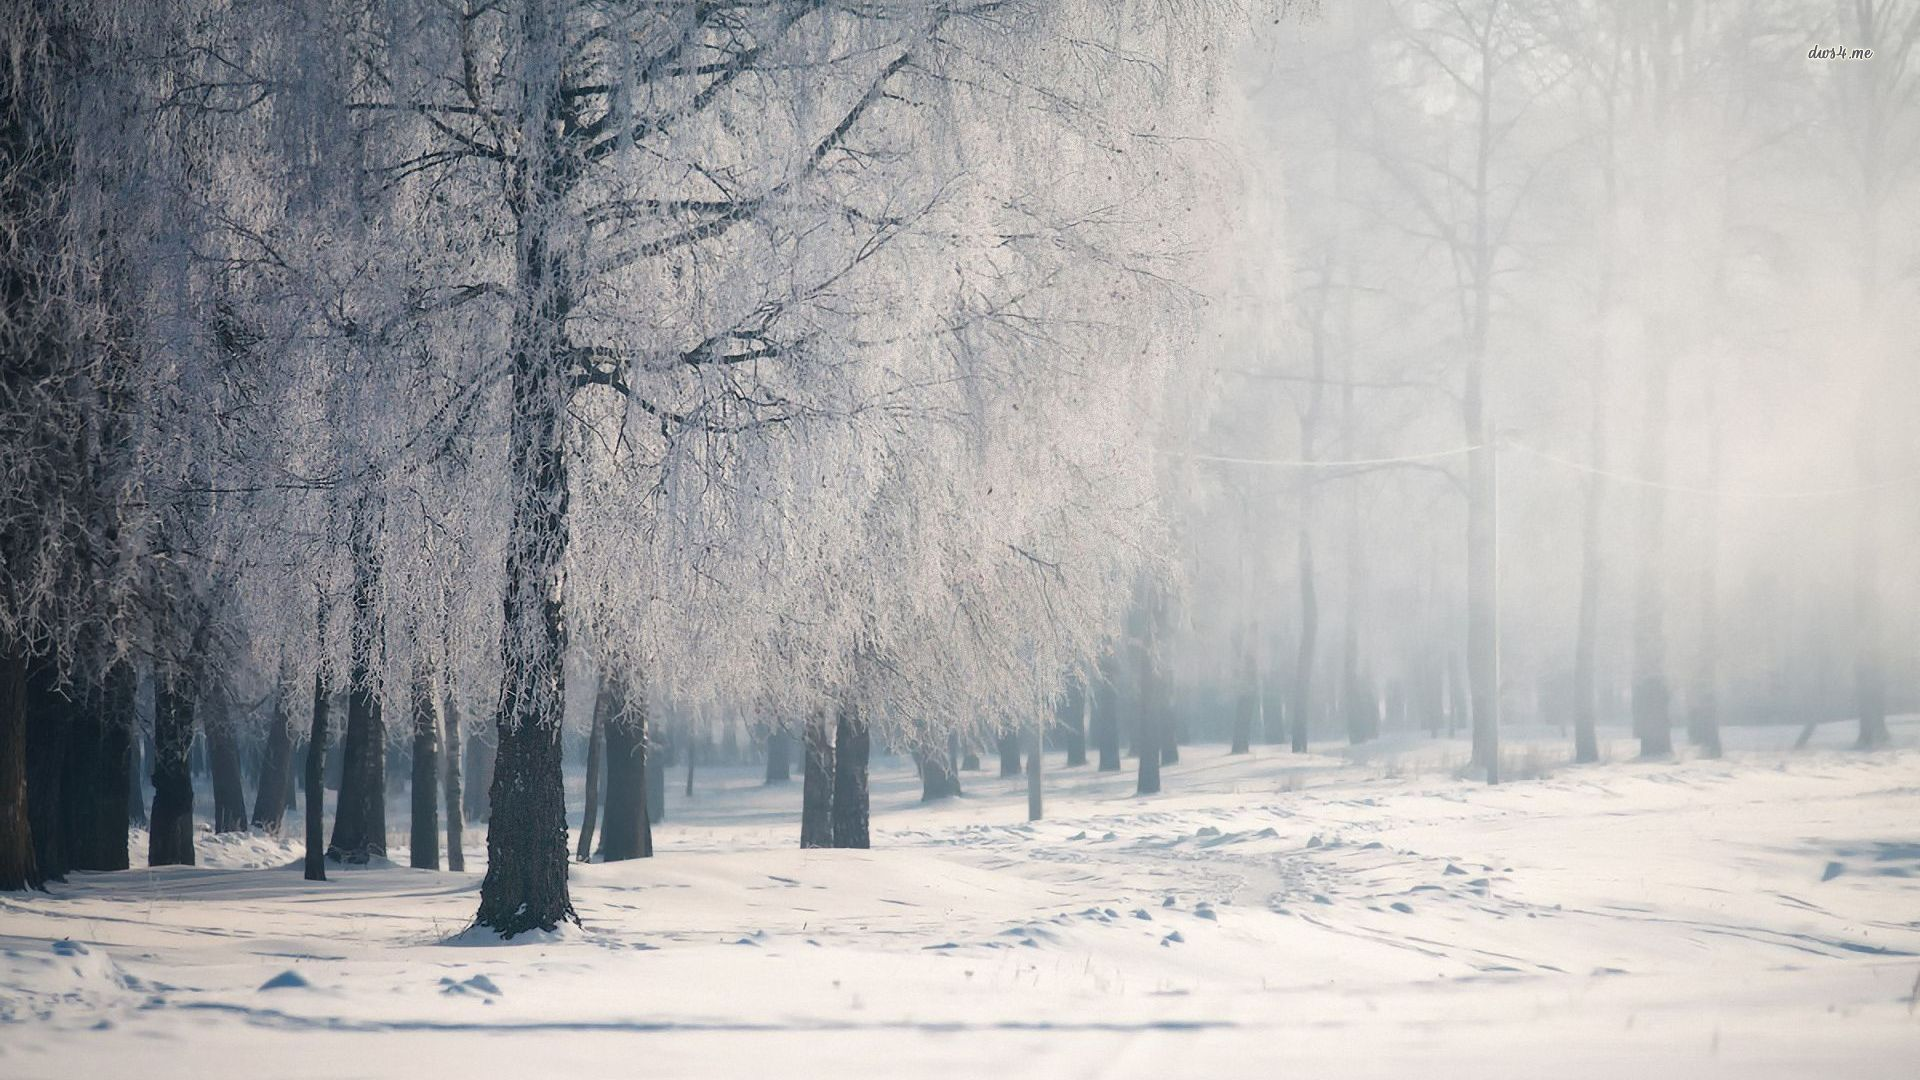 winter forest wallpapers images photos pictures backgrounds